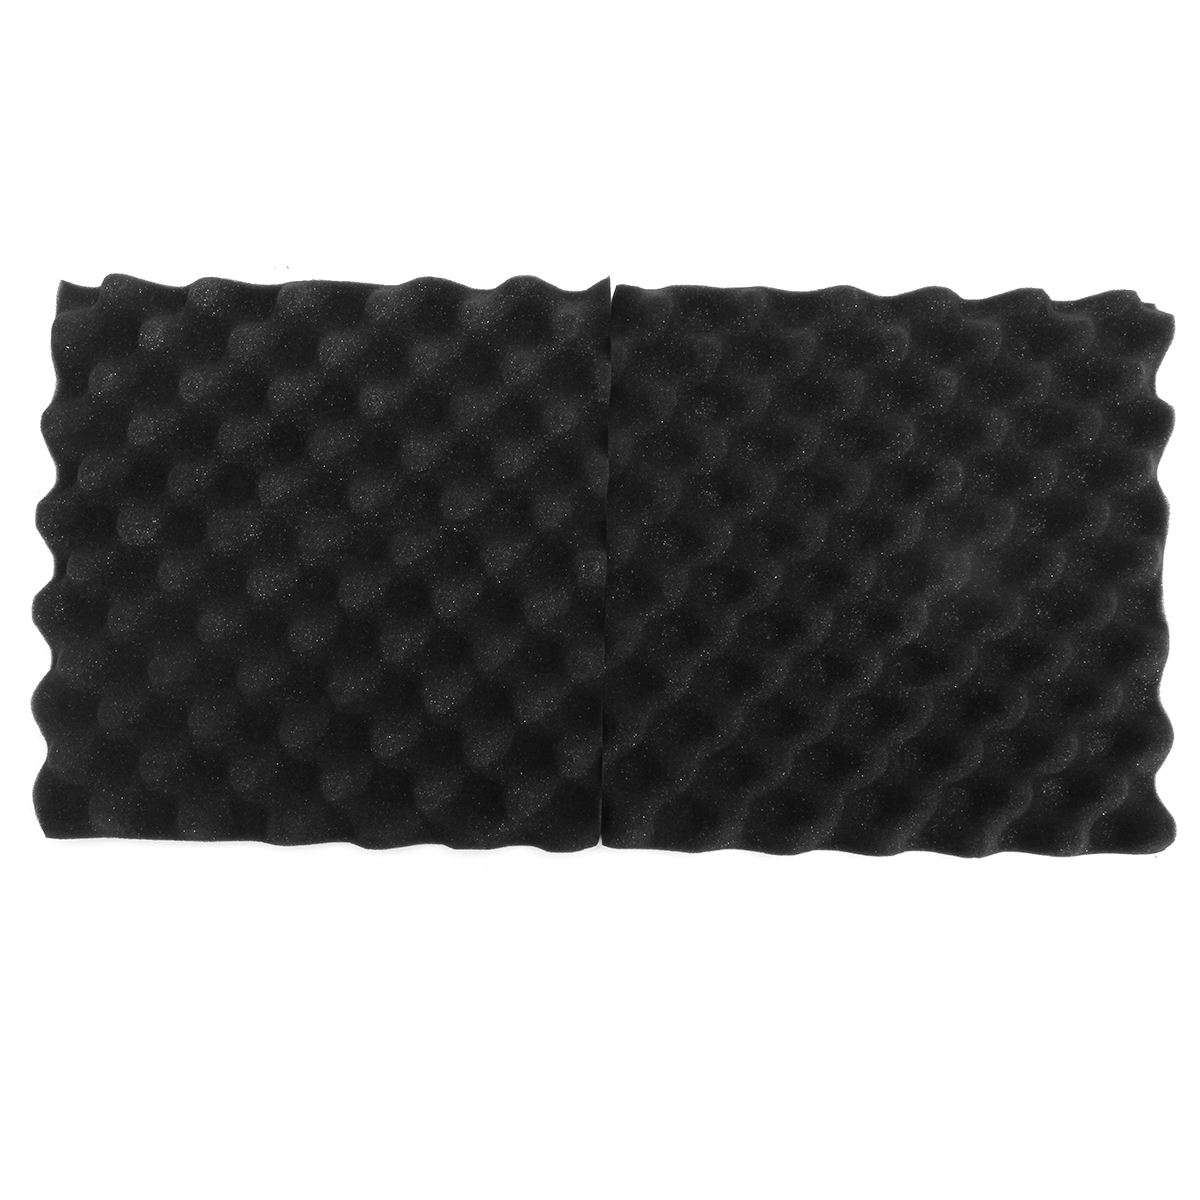 24Pcs Acoustic Sound Treatment Convoluted Egg Profile Foam Panels Soundproofing Foam